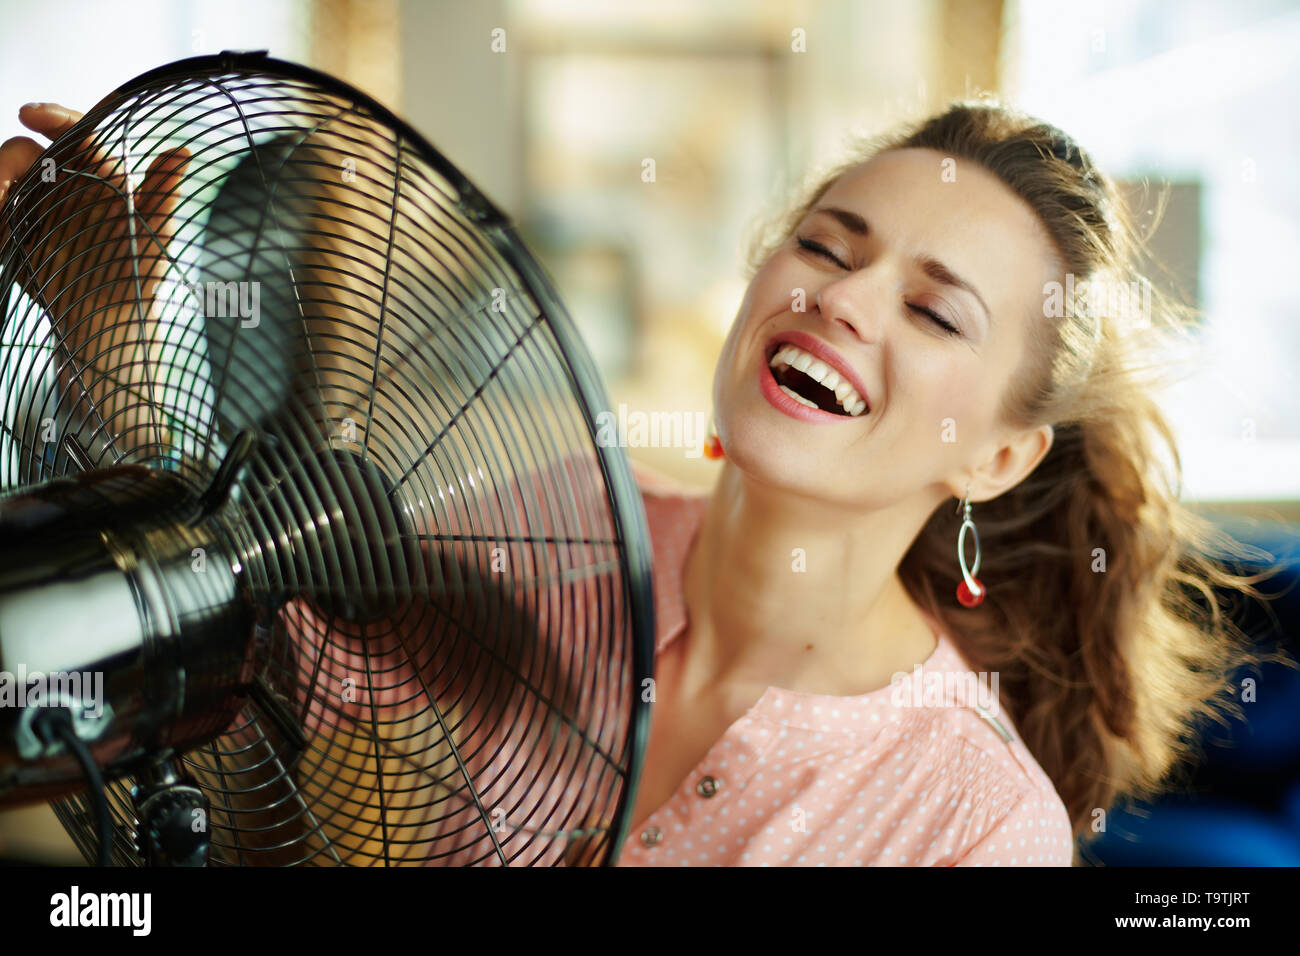 smiling stylish woman in the modern living room in sunny hot summer day using metallic floor standing fan. - Stock Image